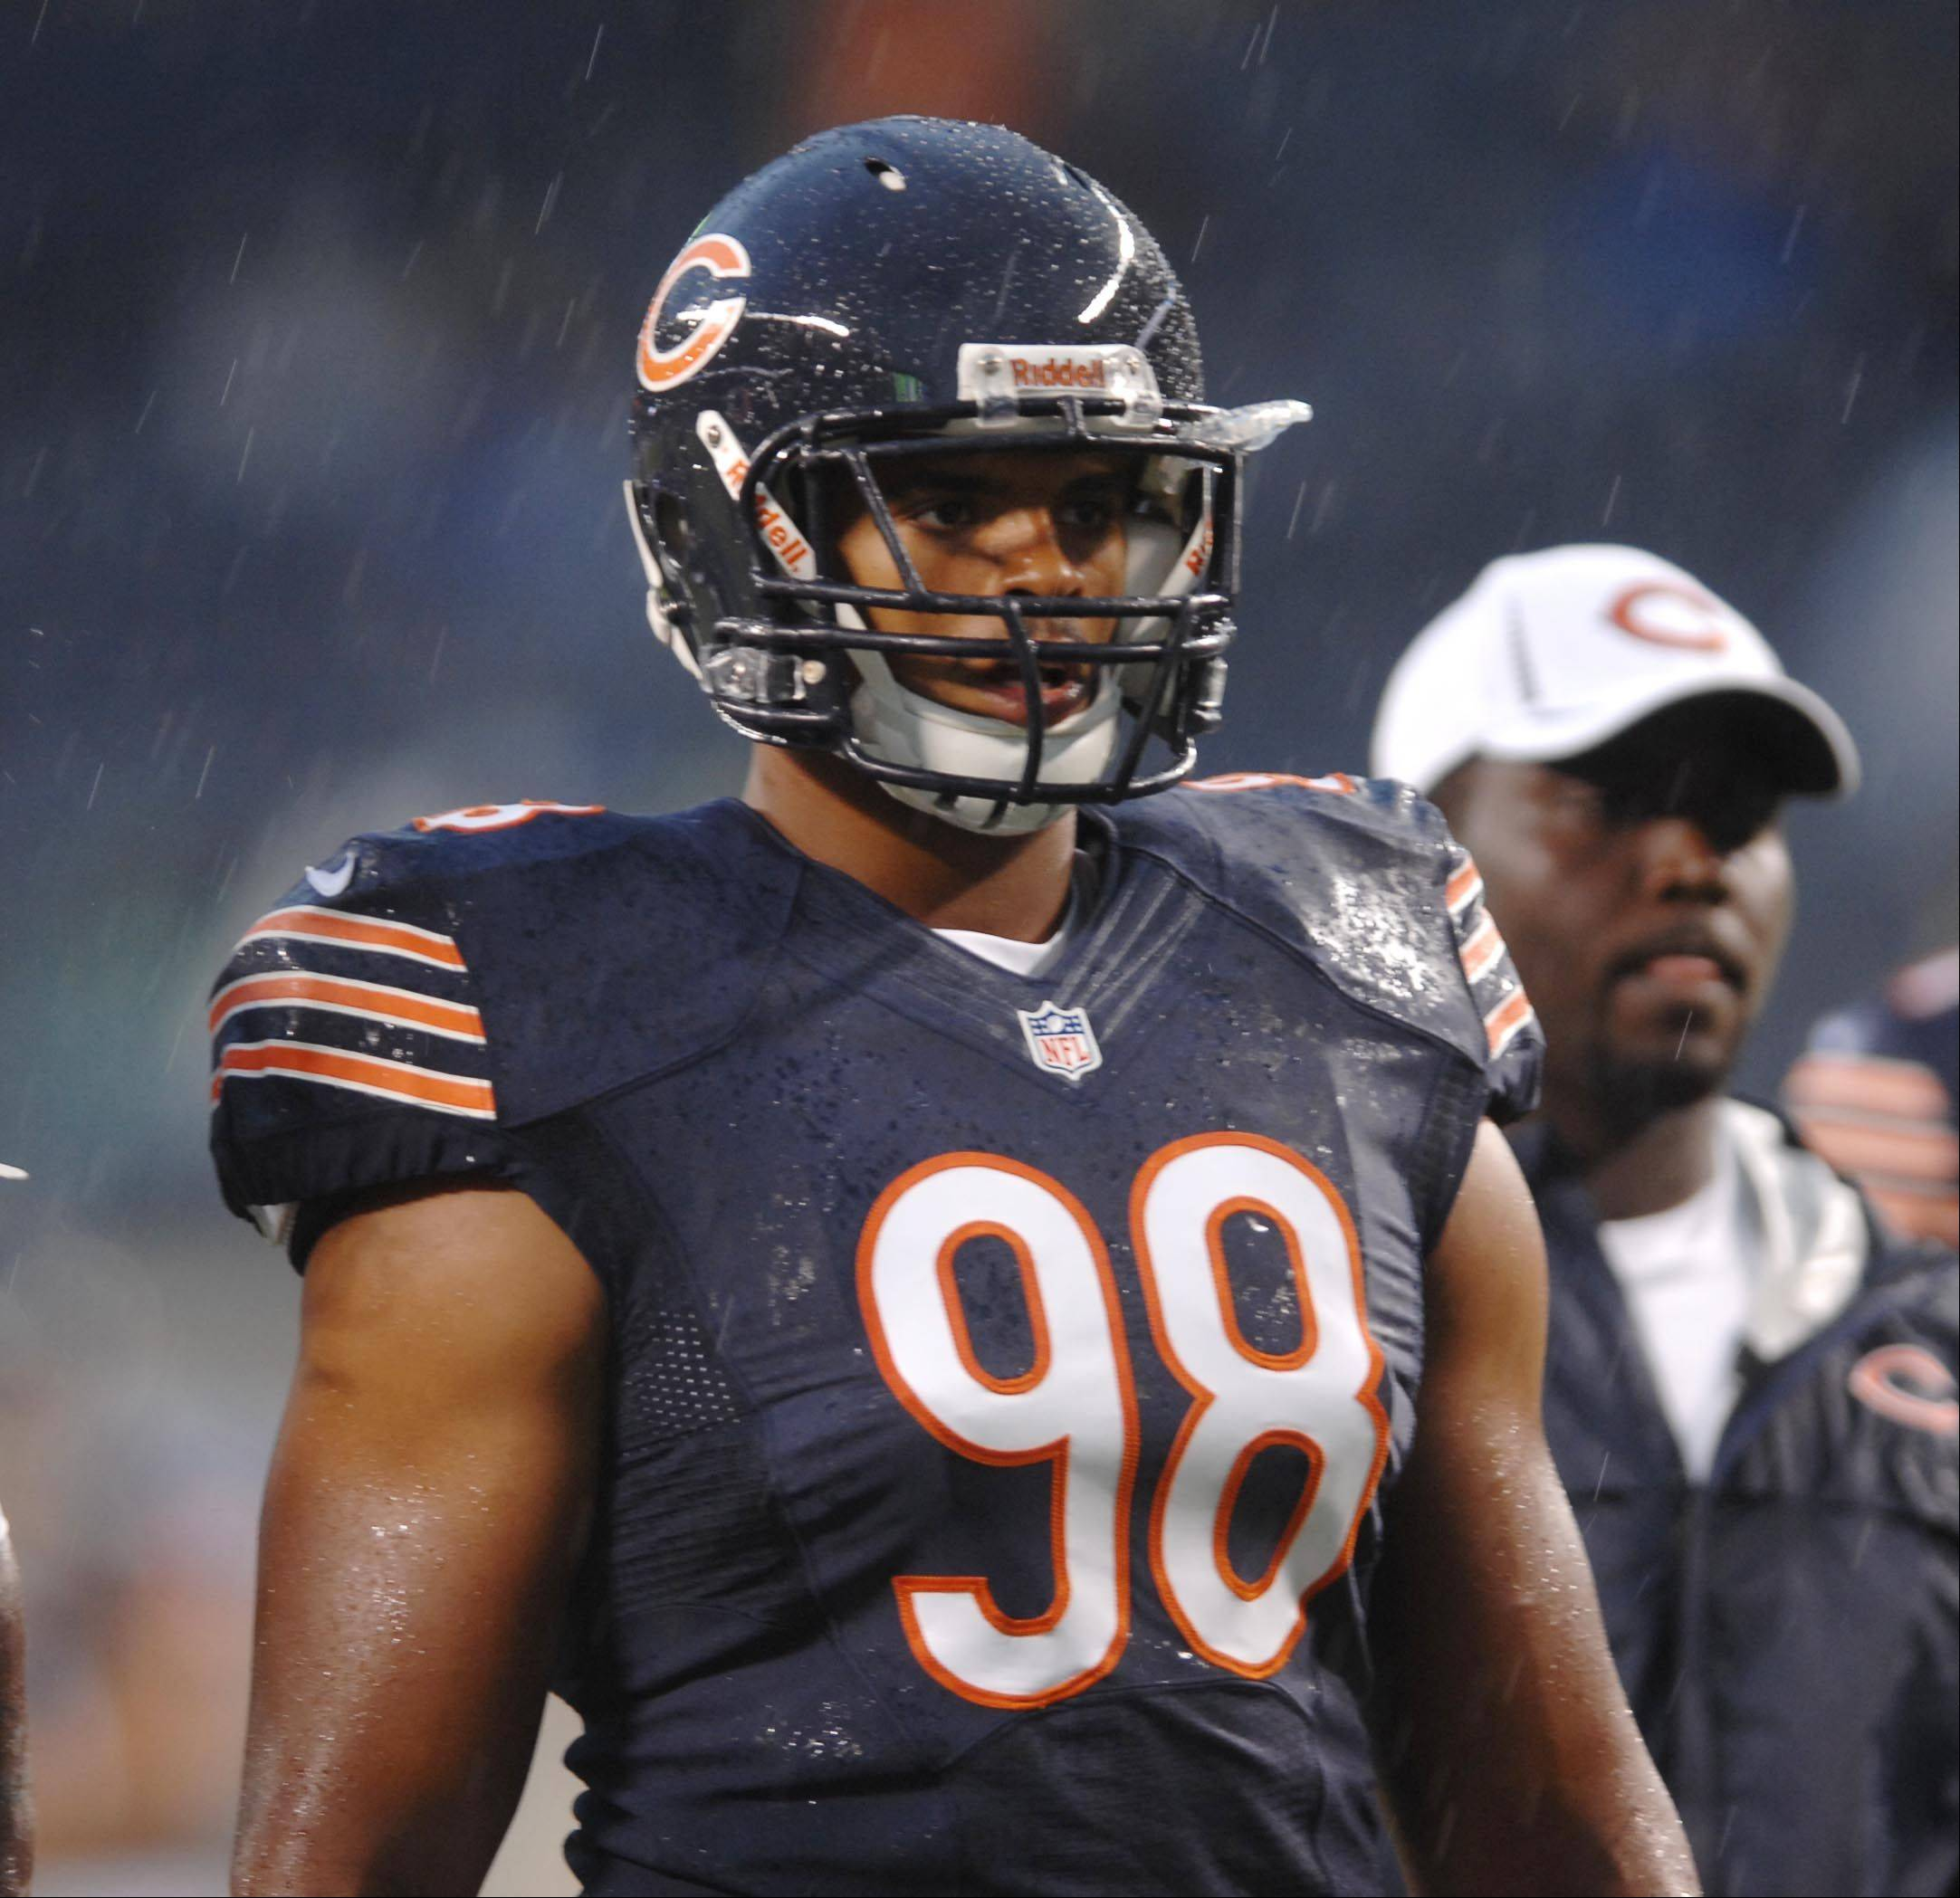 Chicago Bears defensive end Corey Wootton.